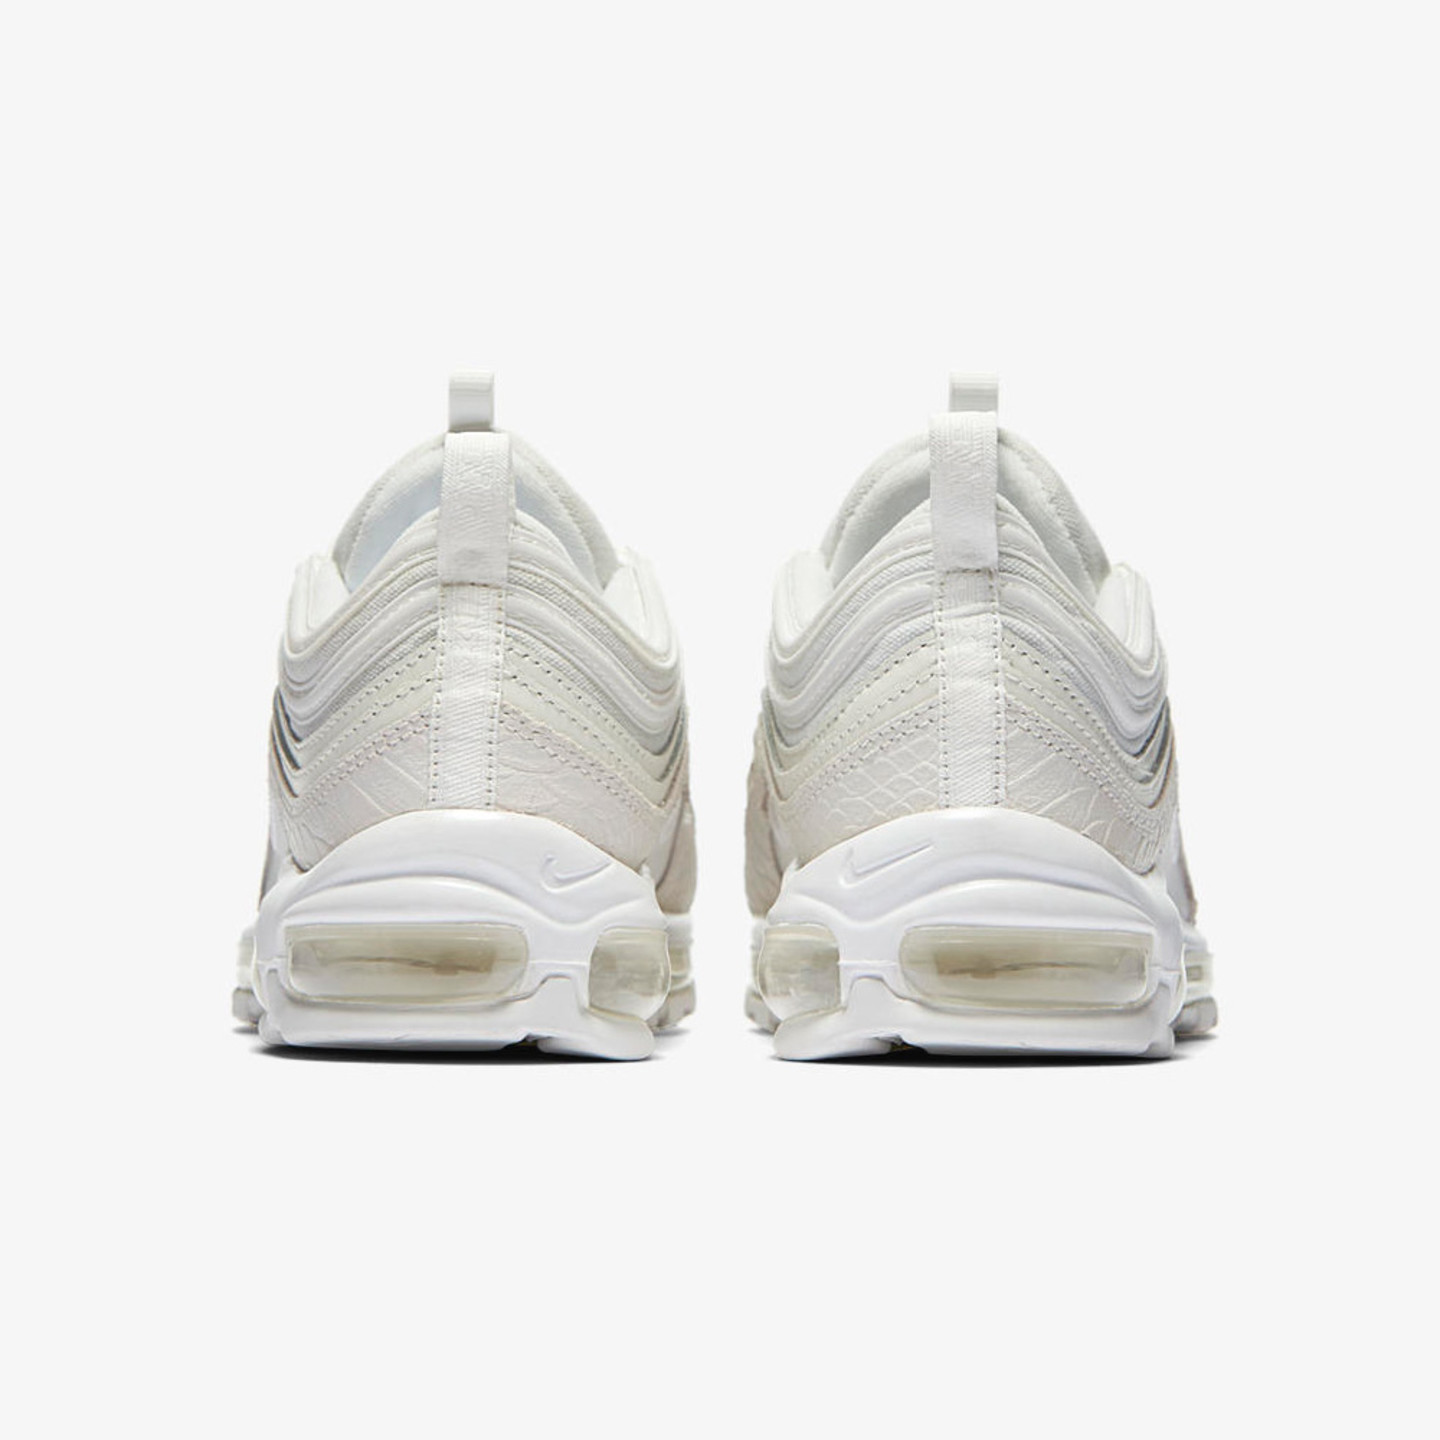 Nike Air Max 97 'Albino Snake' Summit White / Reflective White 921826-100